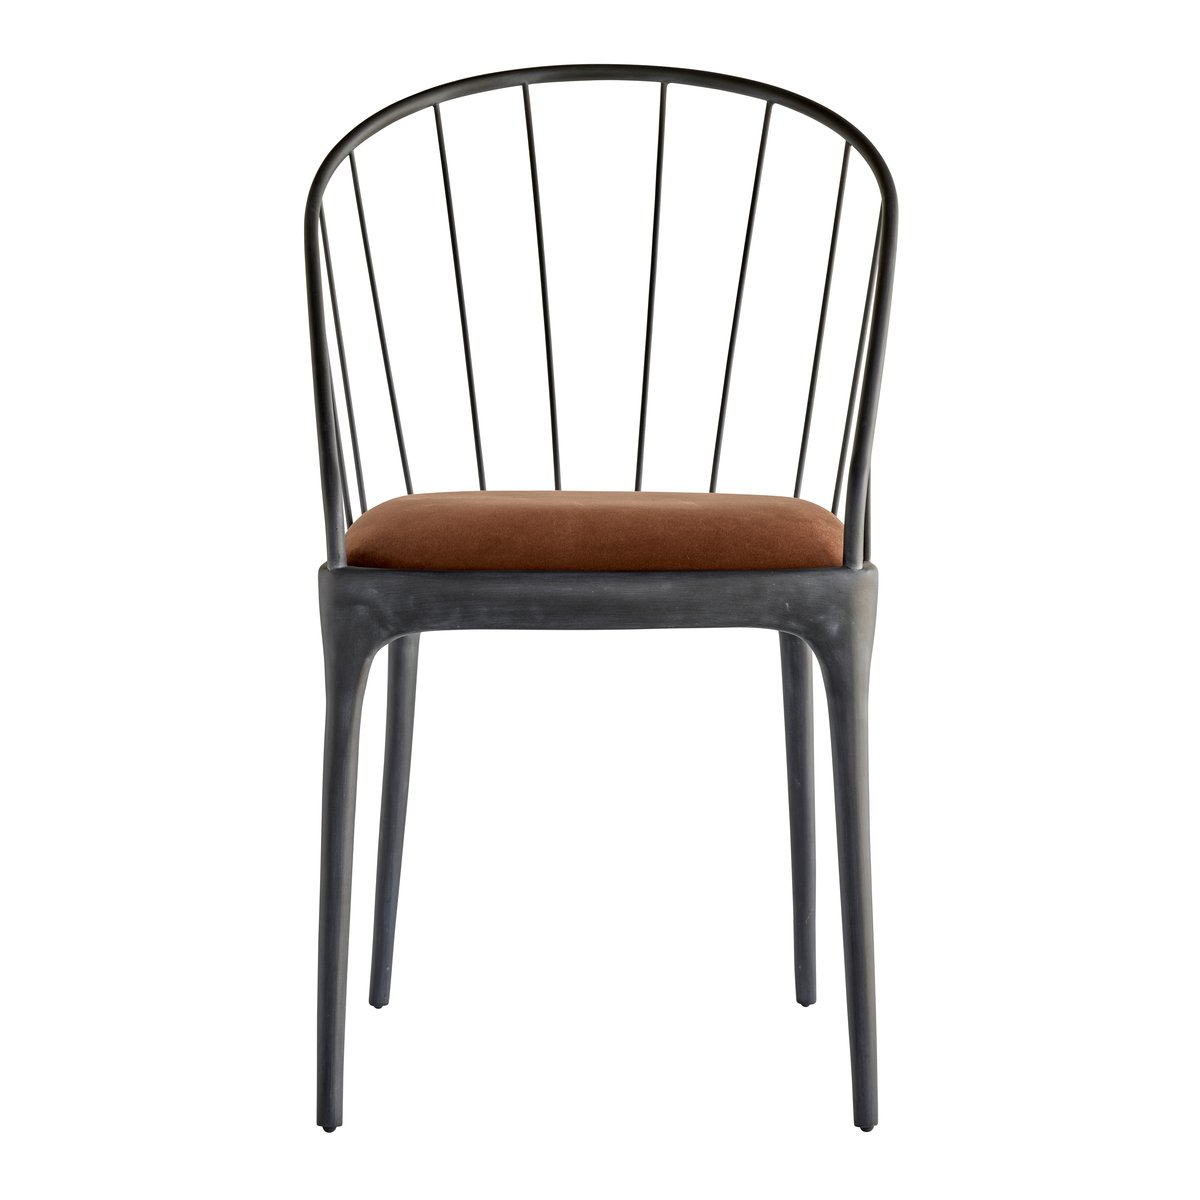 Prime Tine K Home Inspiration Slow A W Kollektion 2018 Tine Caraccident5 Cool Chair Designs And Ideas Caraccident5Info